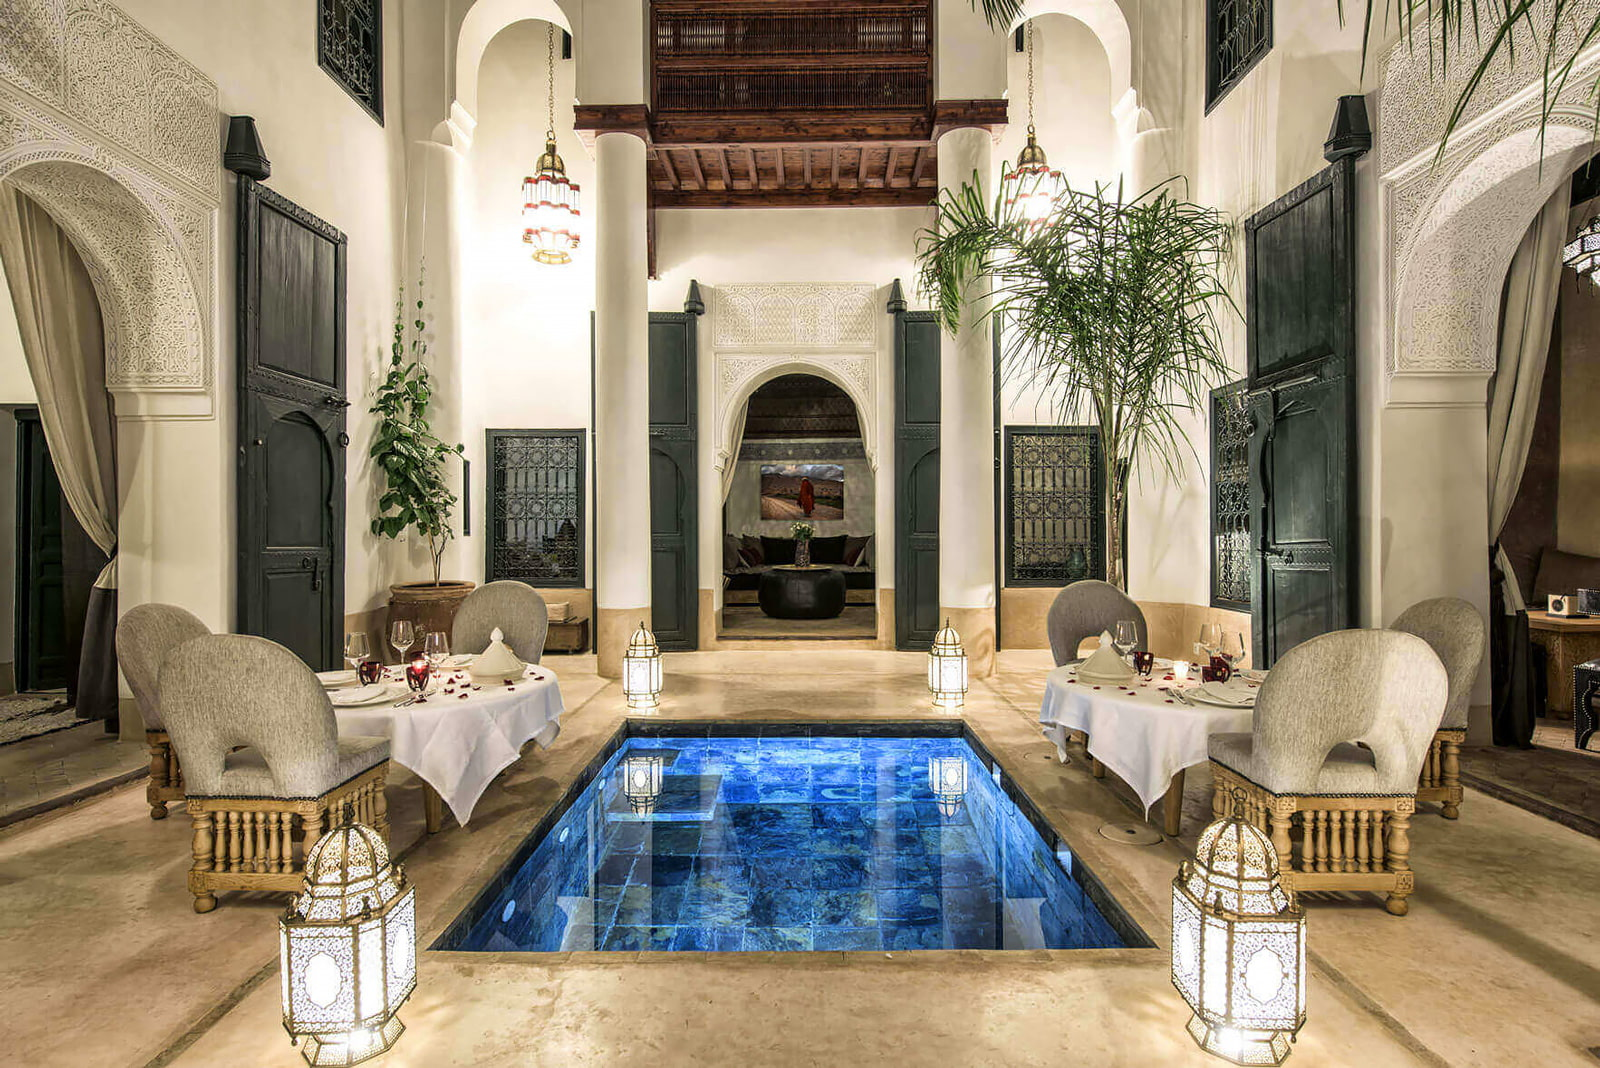 Beautiful riad design